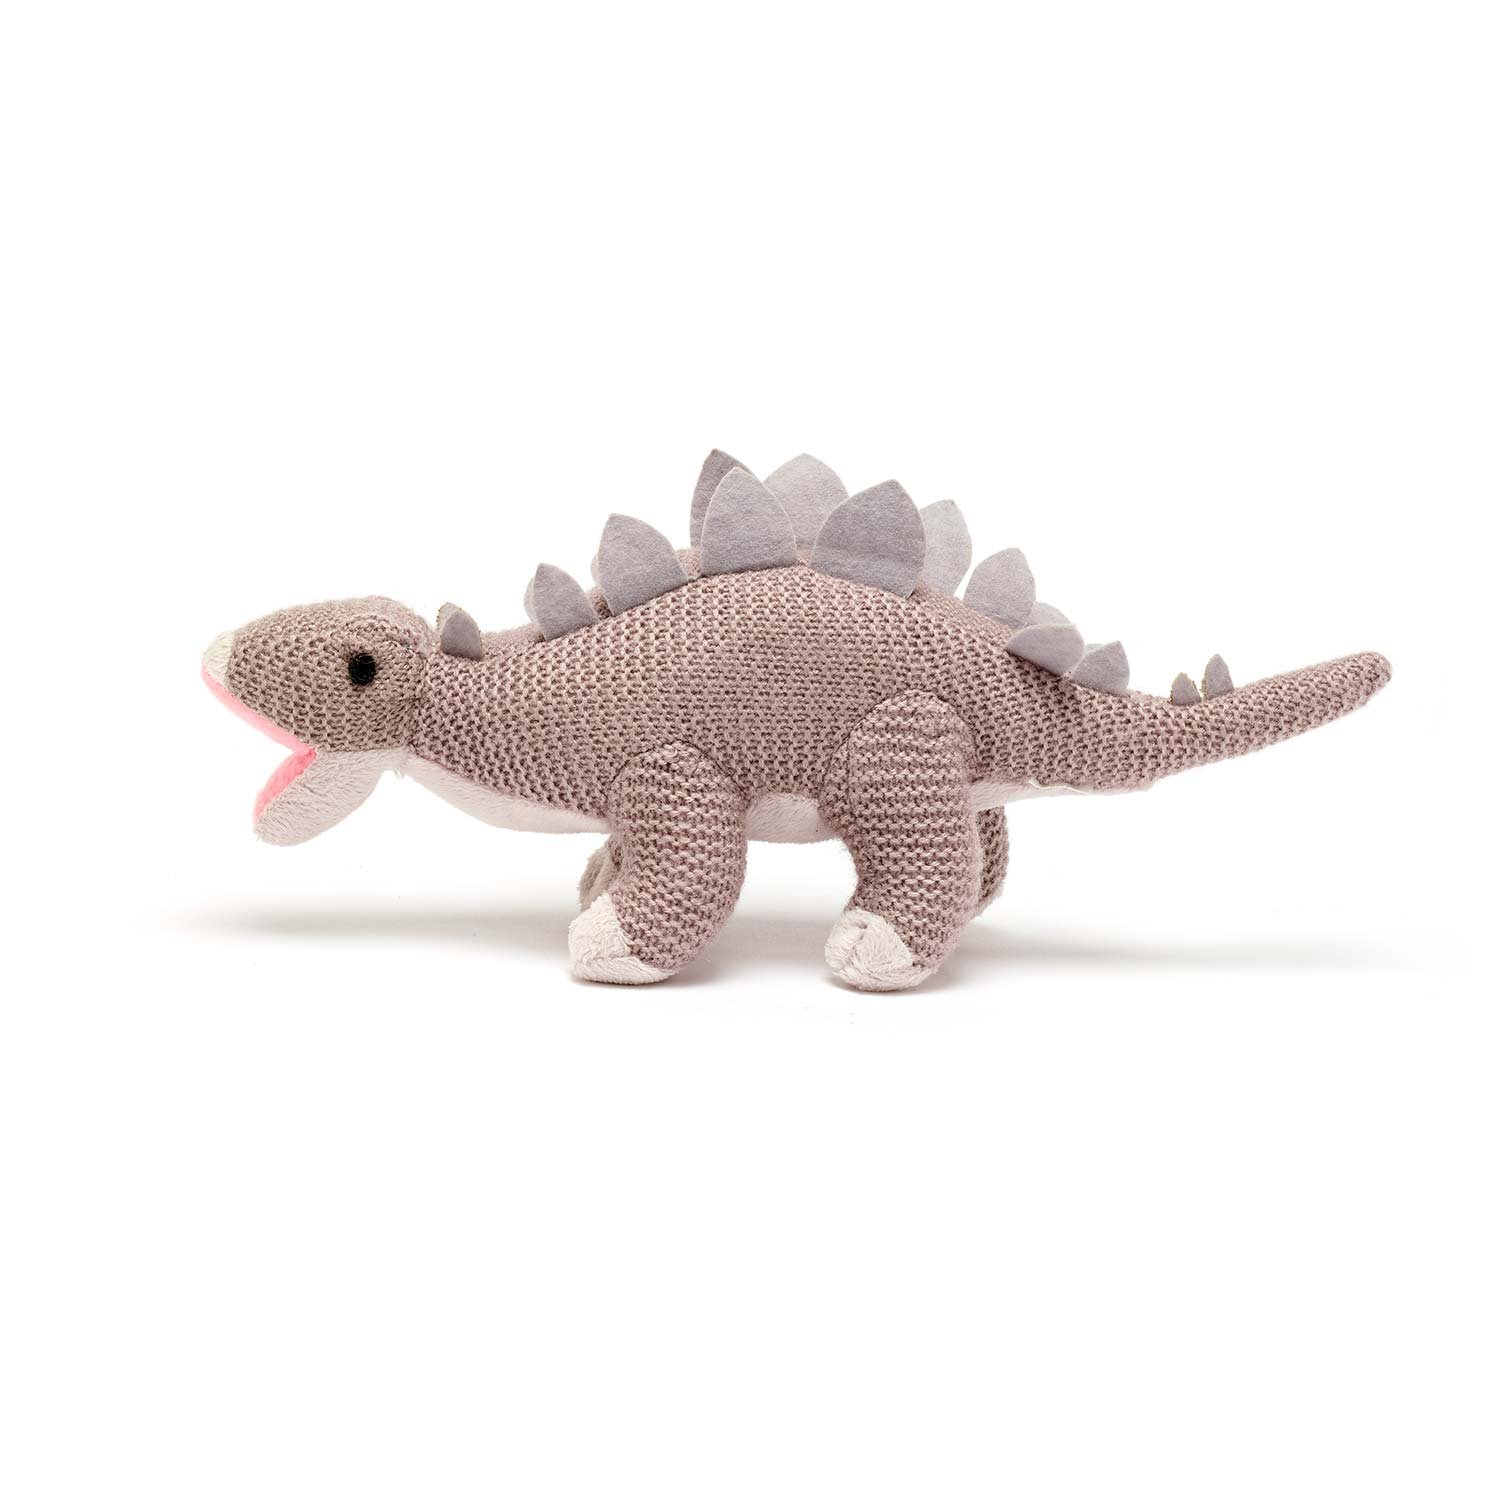 Stegosaurus knitted dinosaur product photo